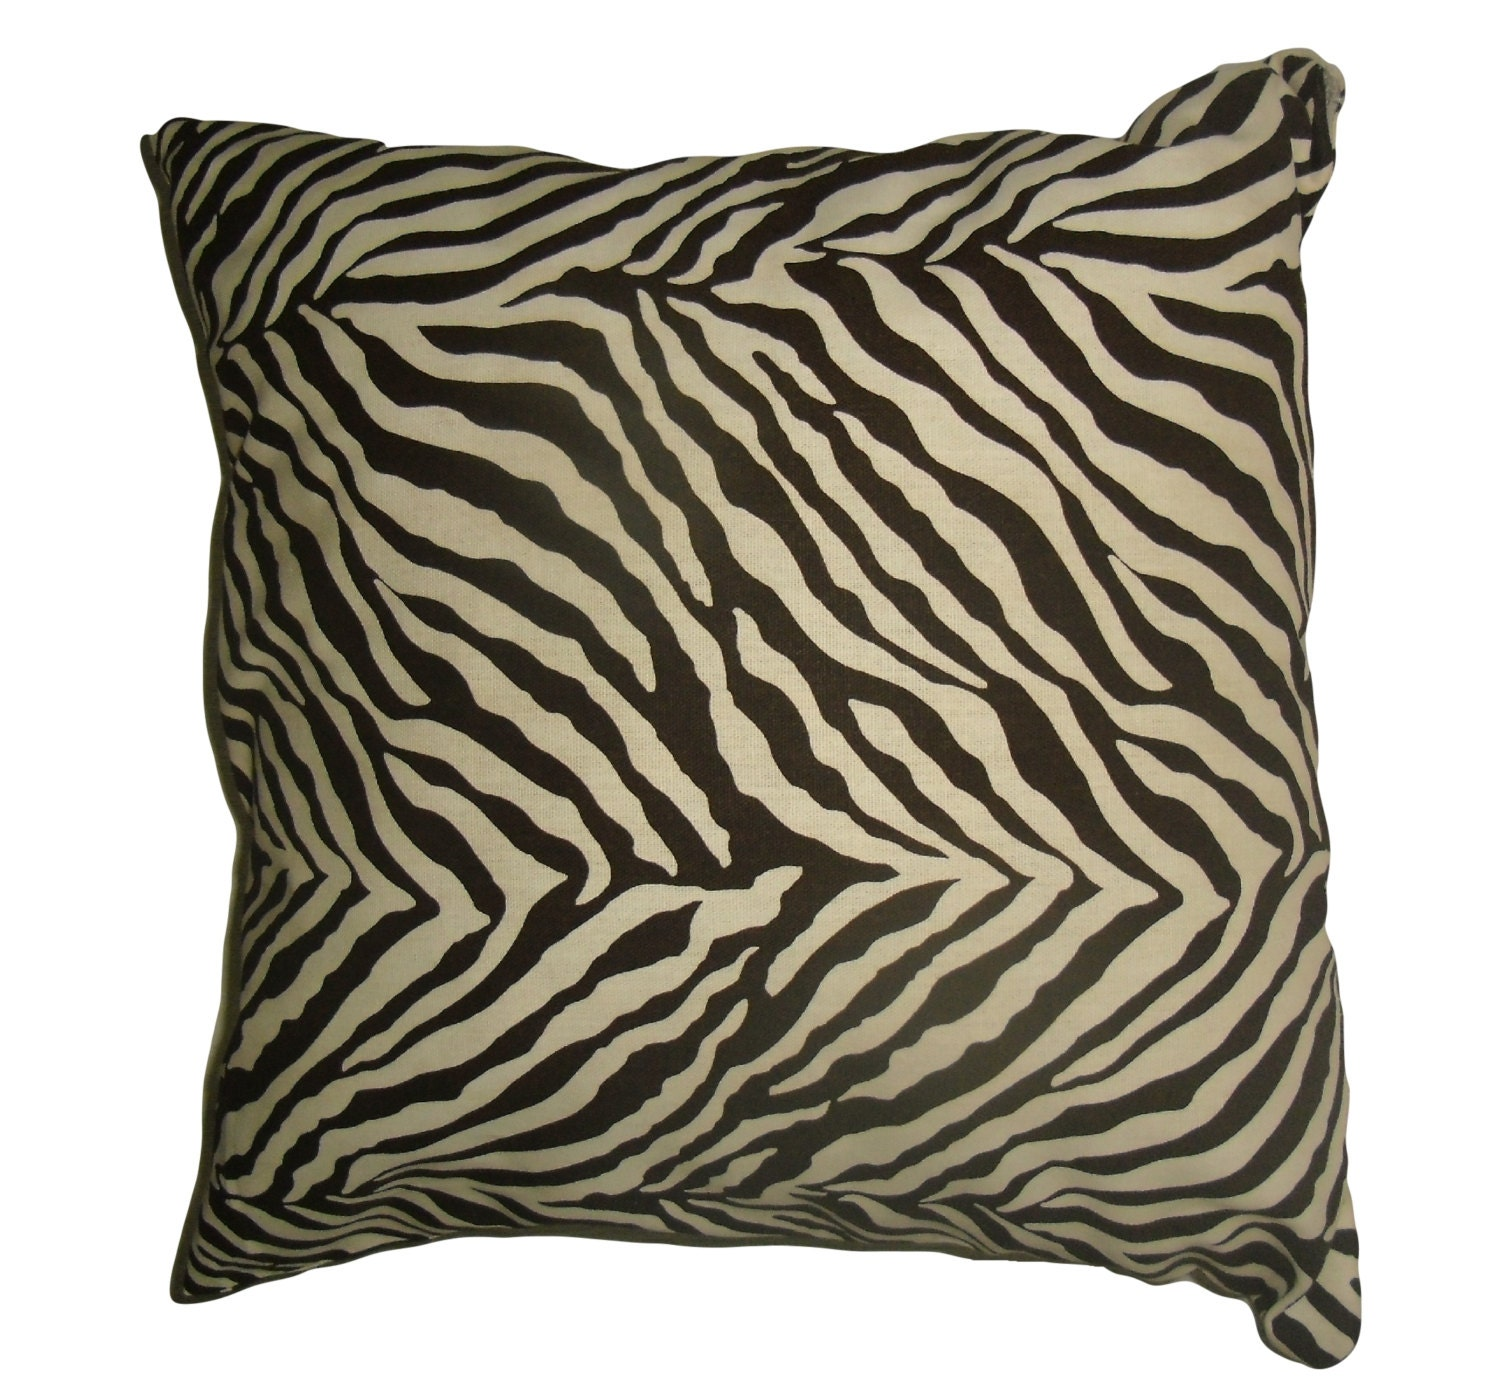 Zebra Decorative Pillows : Kuwaha Zebra Animal Print Decorative Pillow Cover Brown